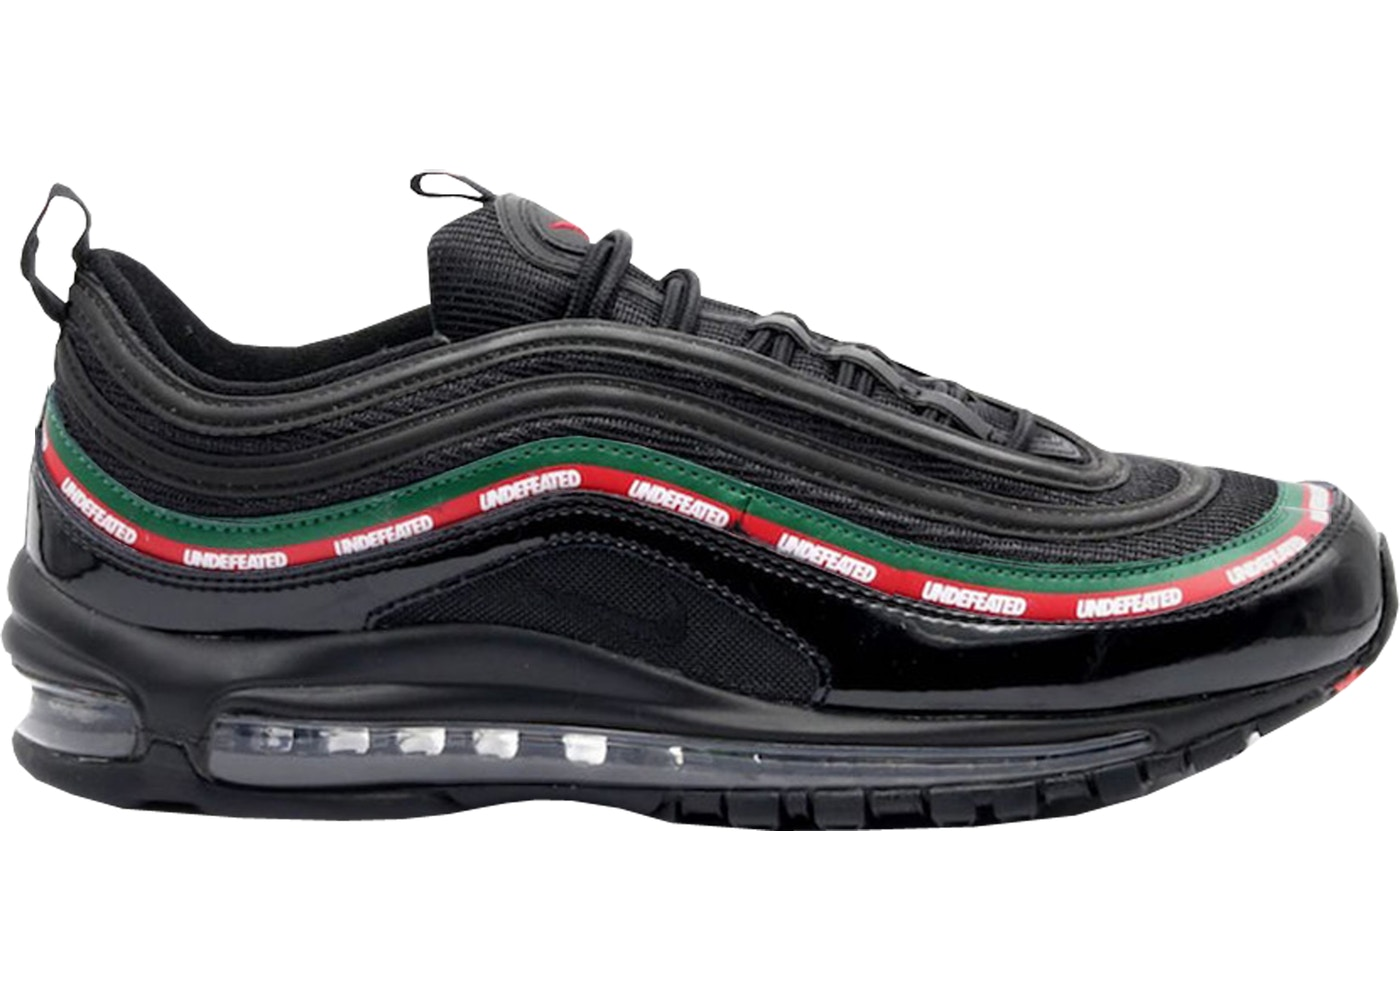 UNDEFEATED x Nike Air Max 97 Black On Feet